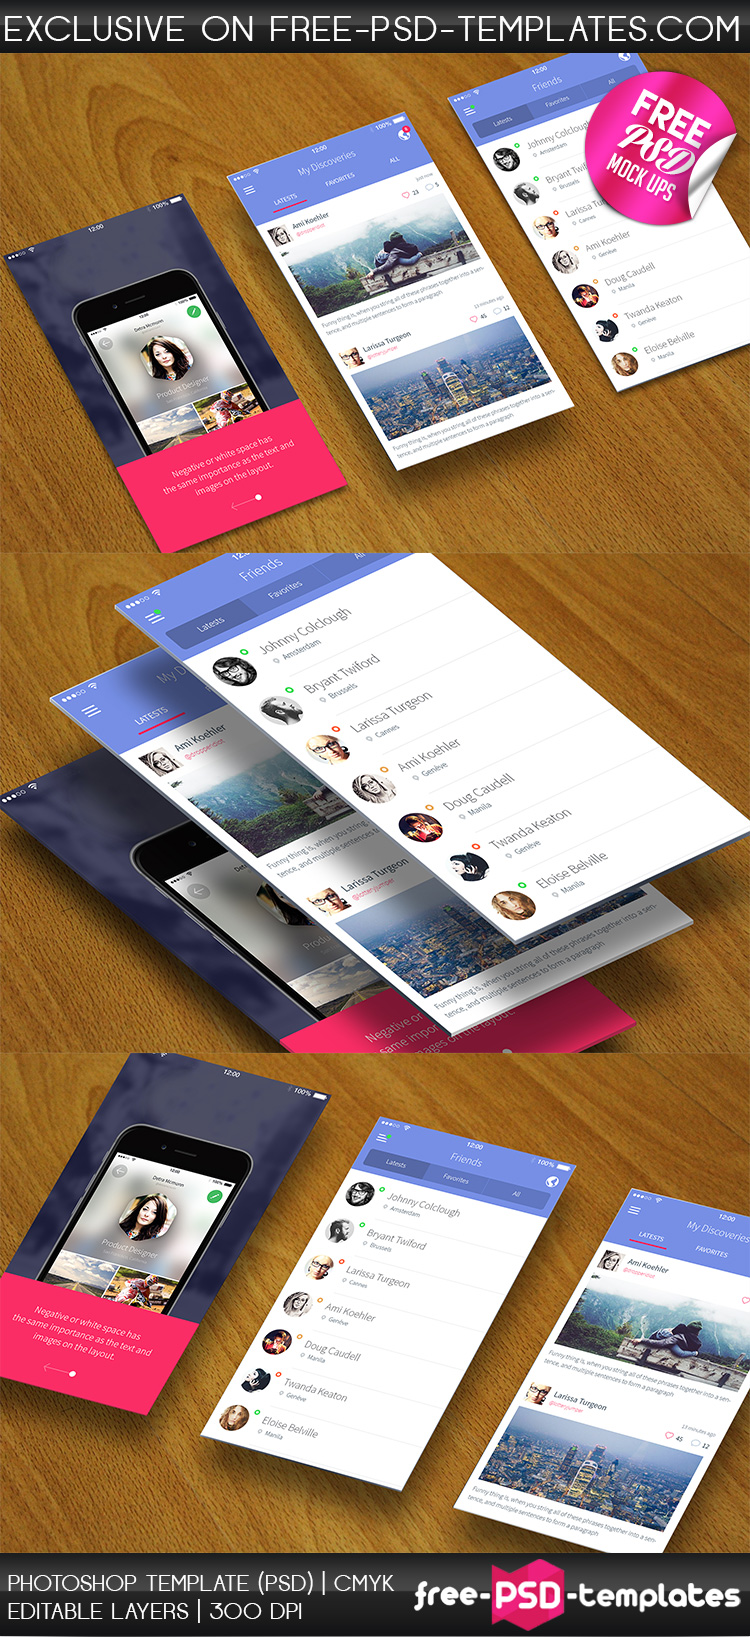 Preview_Free_PSD_Mobile_Apps_mockup